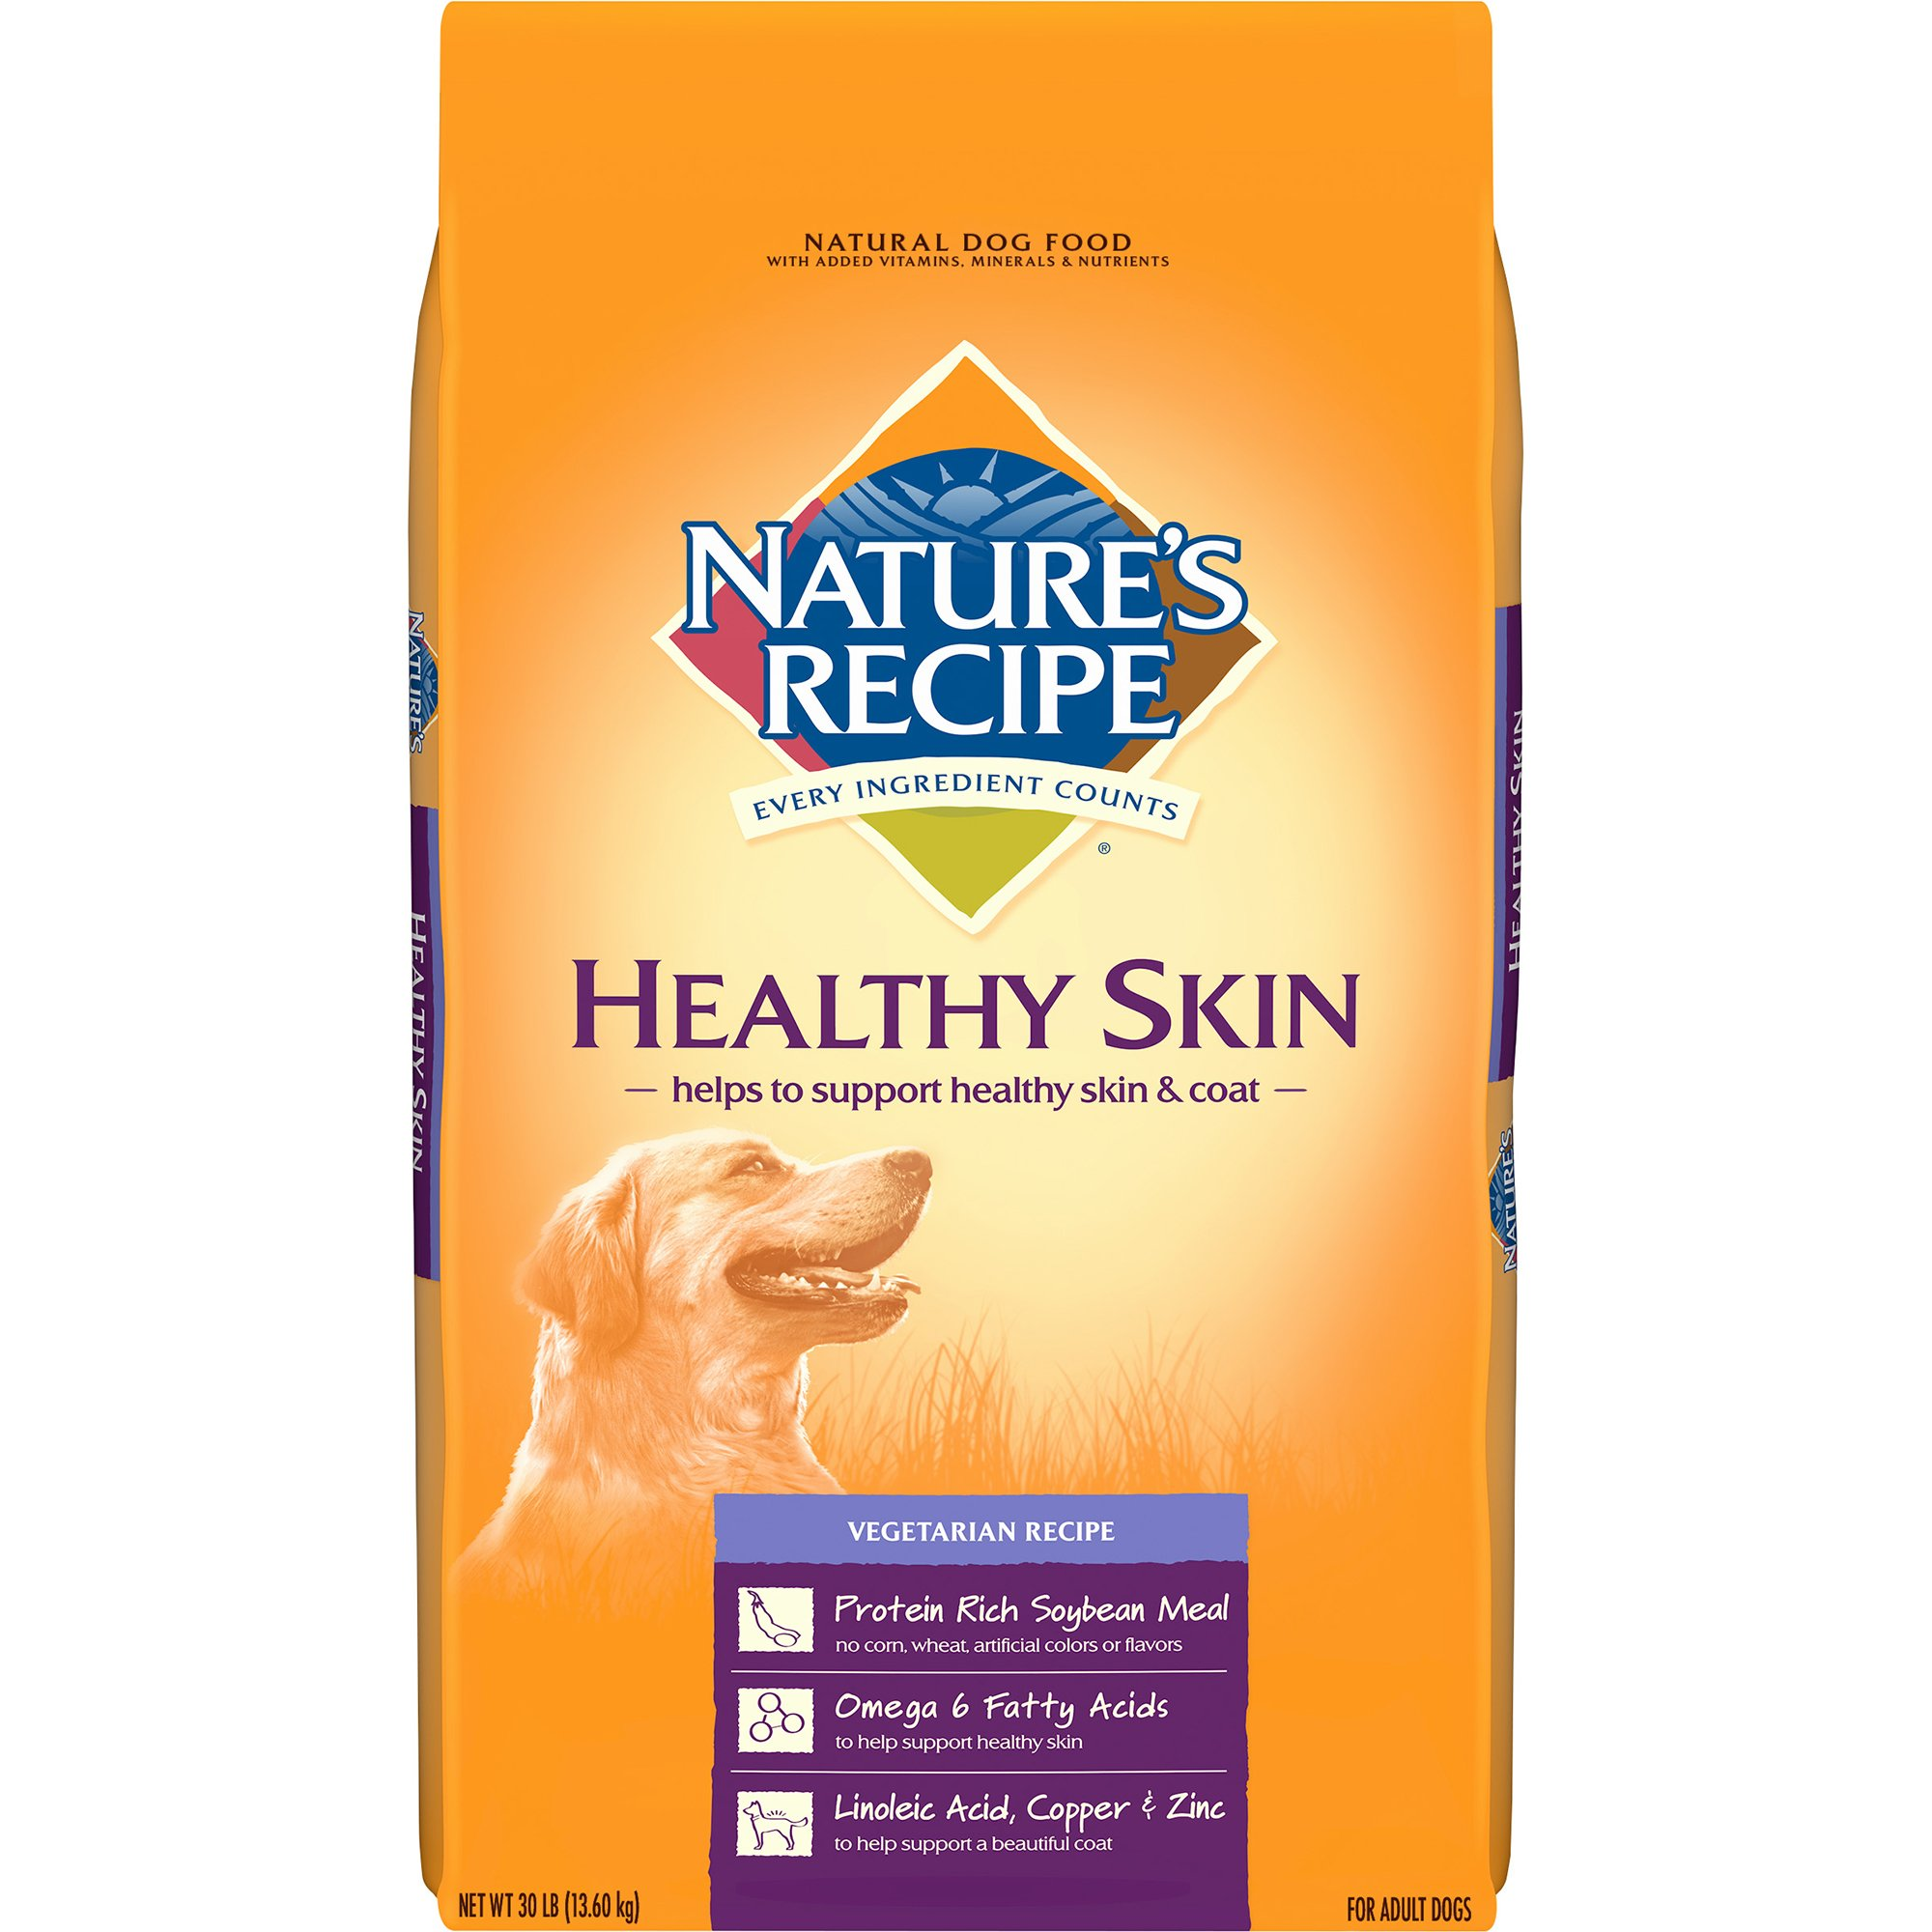 Nature's Recipe Healthy Skin Vegetarian Recipe Adult Dog Food